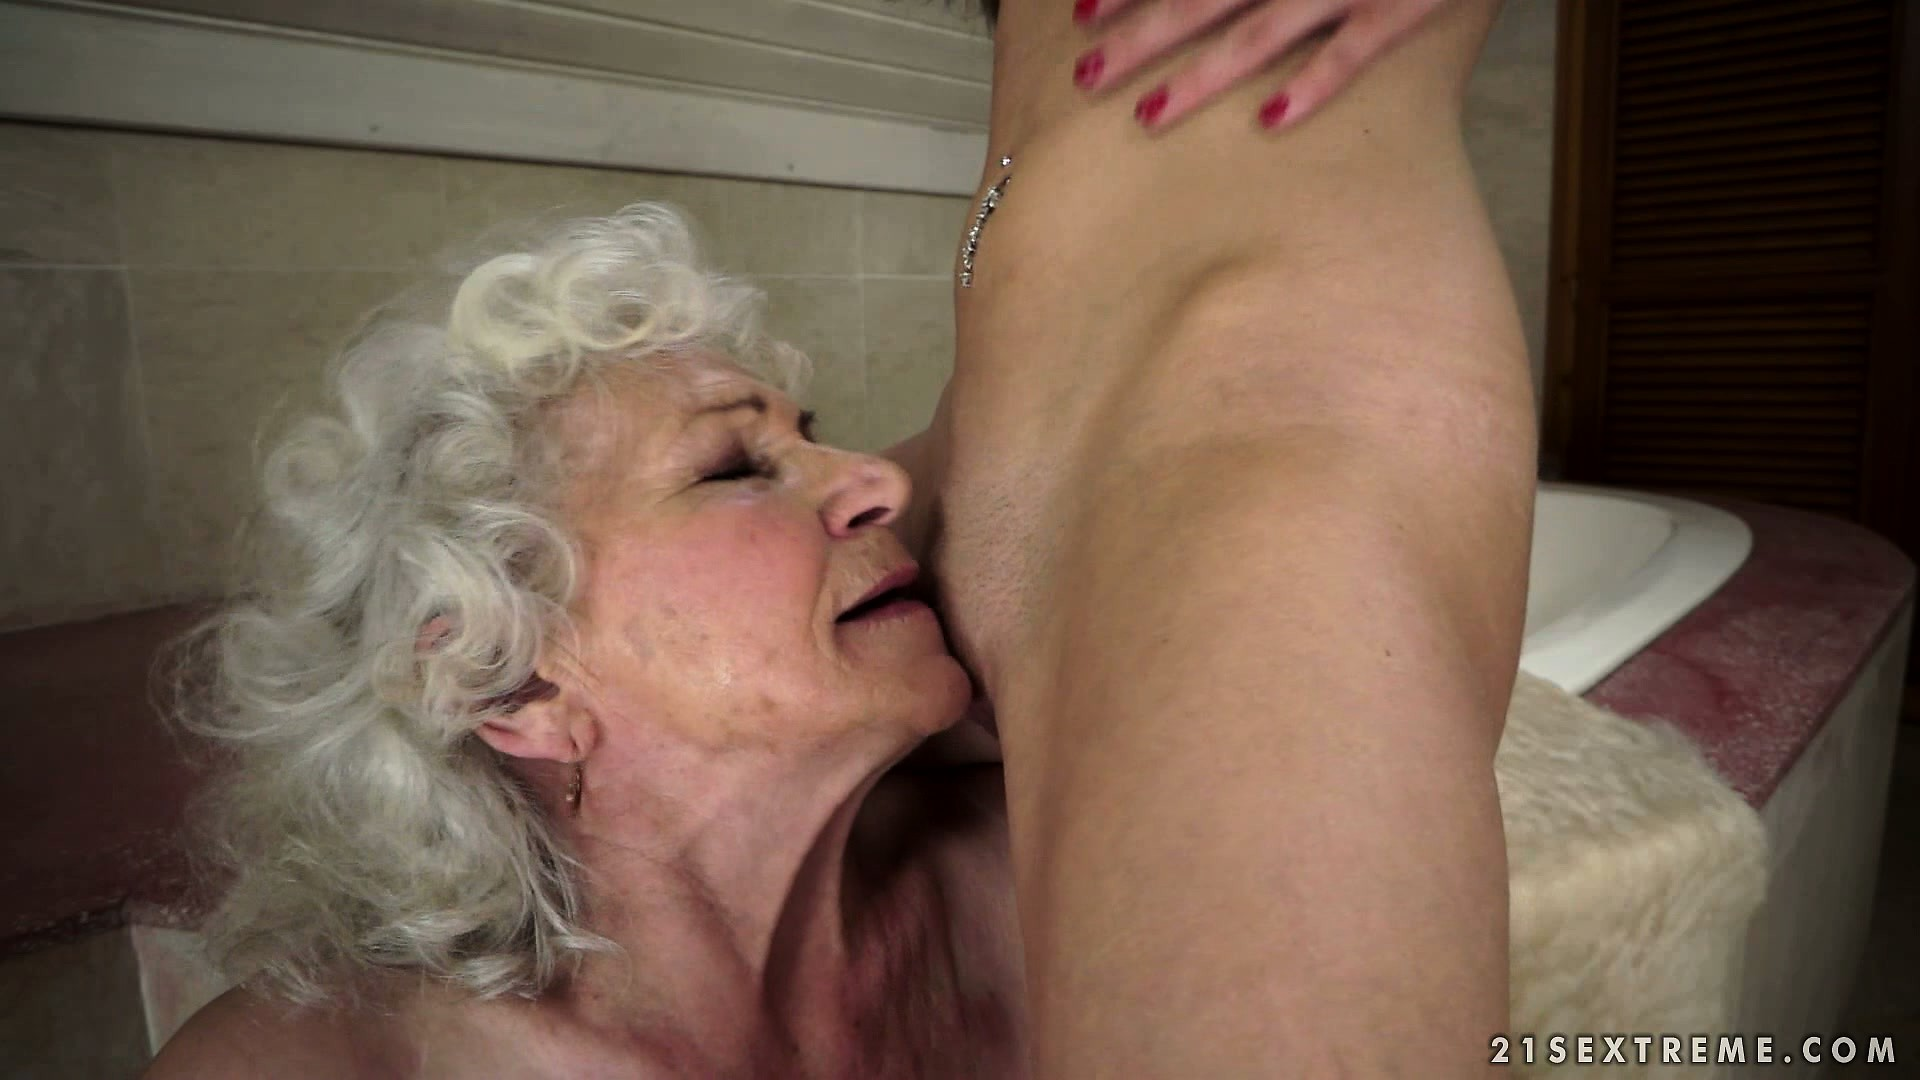 grandma free porn tubes - free grandma sex tube movies from 7 dog